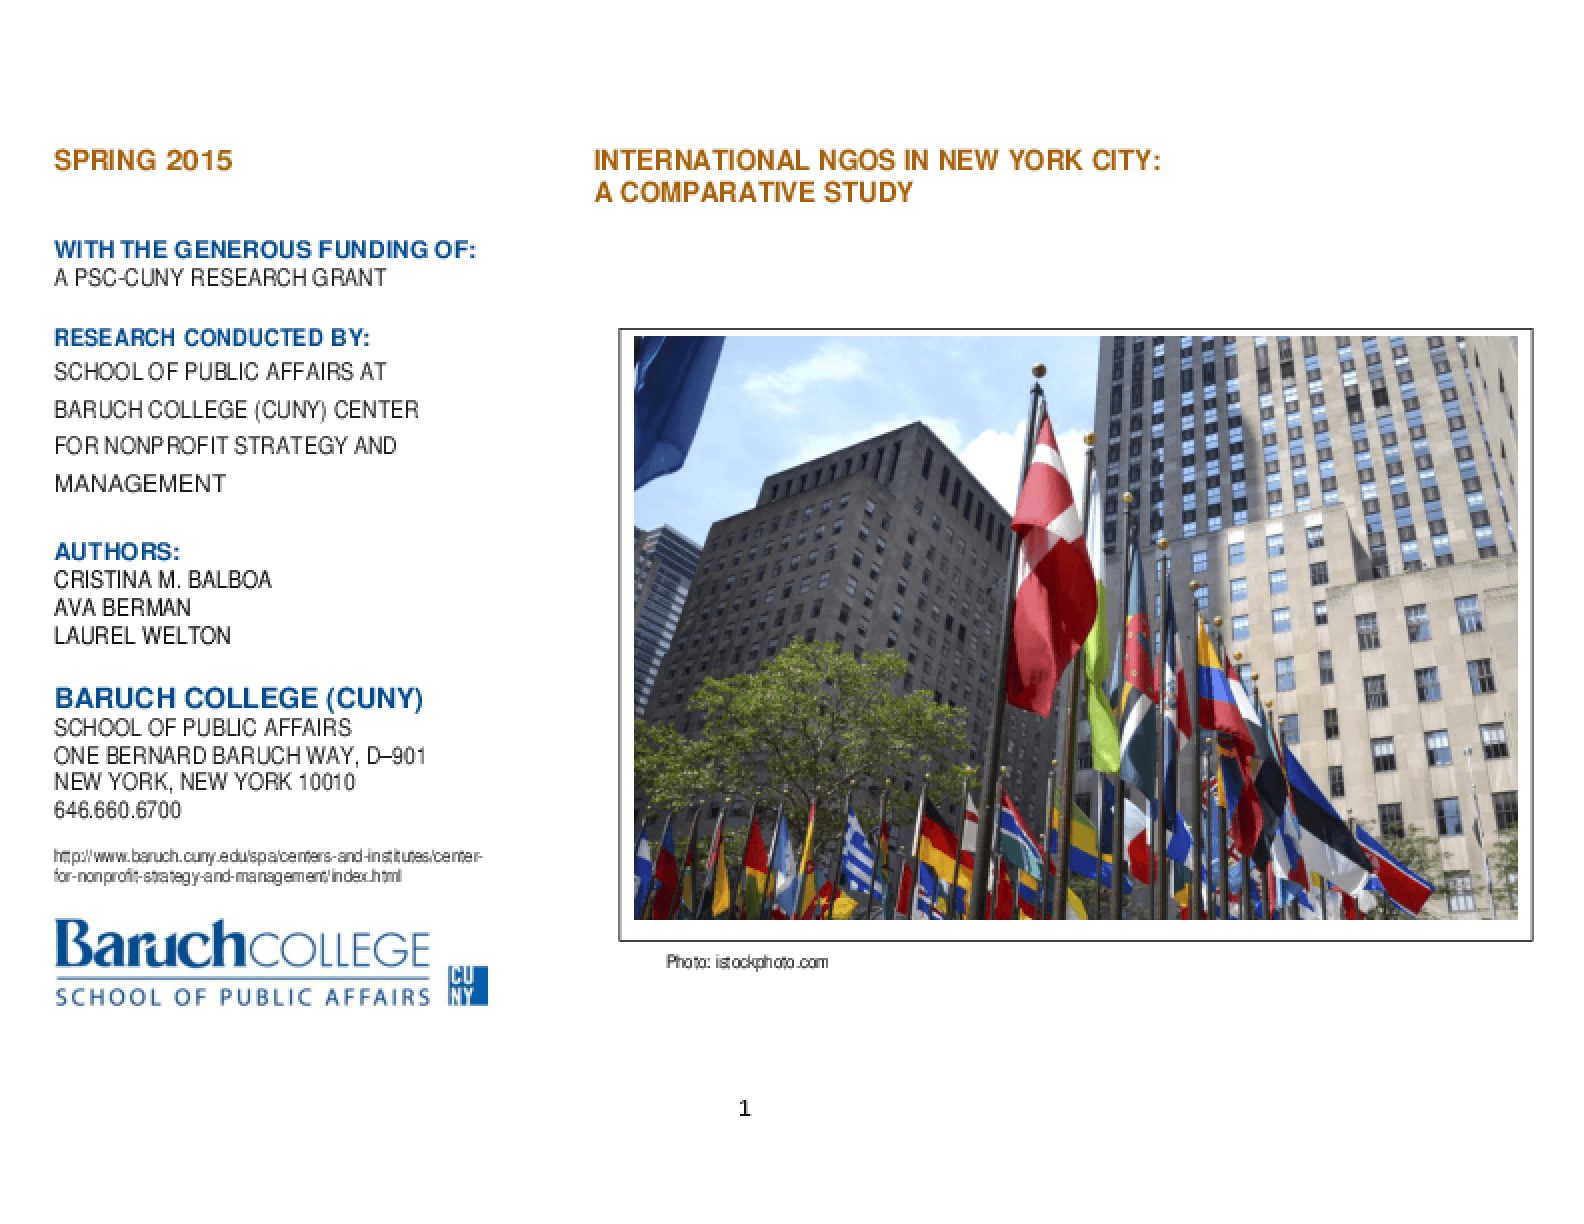 International NGOs in New York City: A Comparative Study